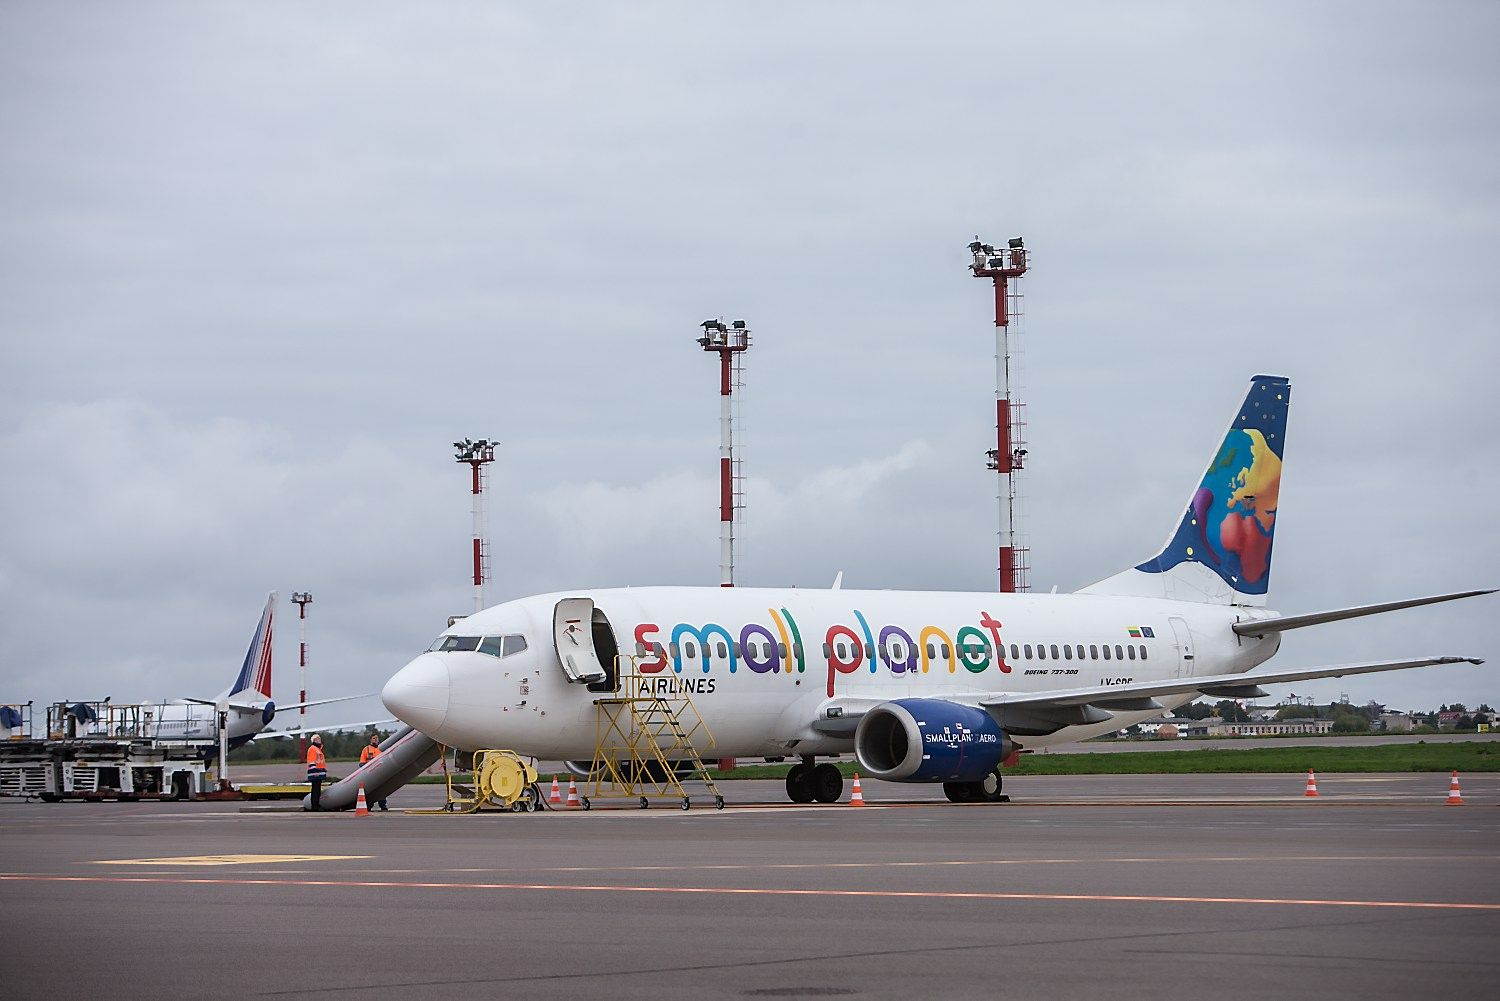 """Small Planet Airlines"" skraidys iš Amsterdamo"